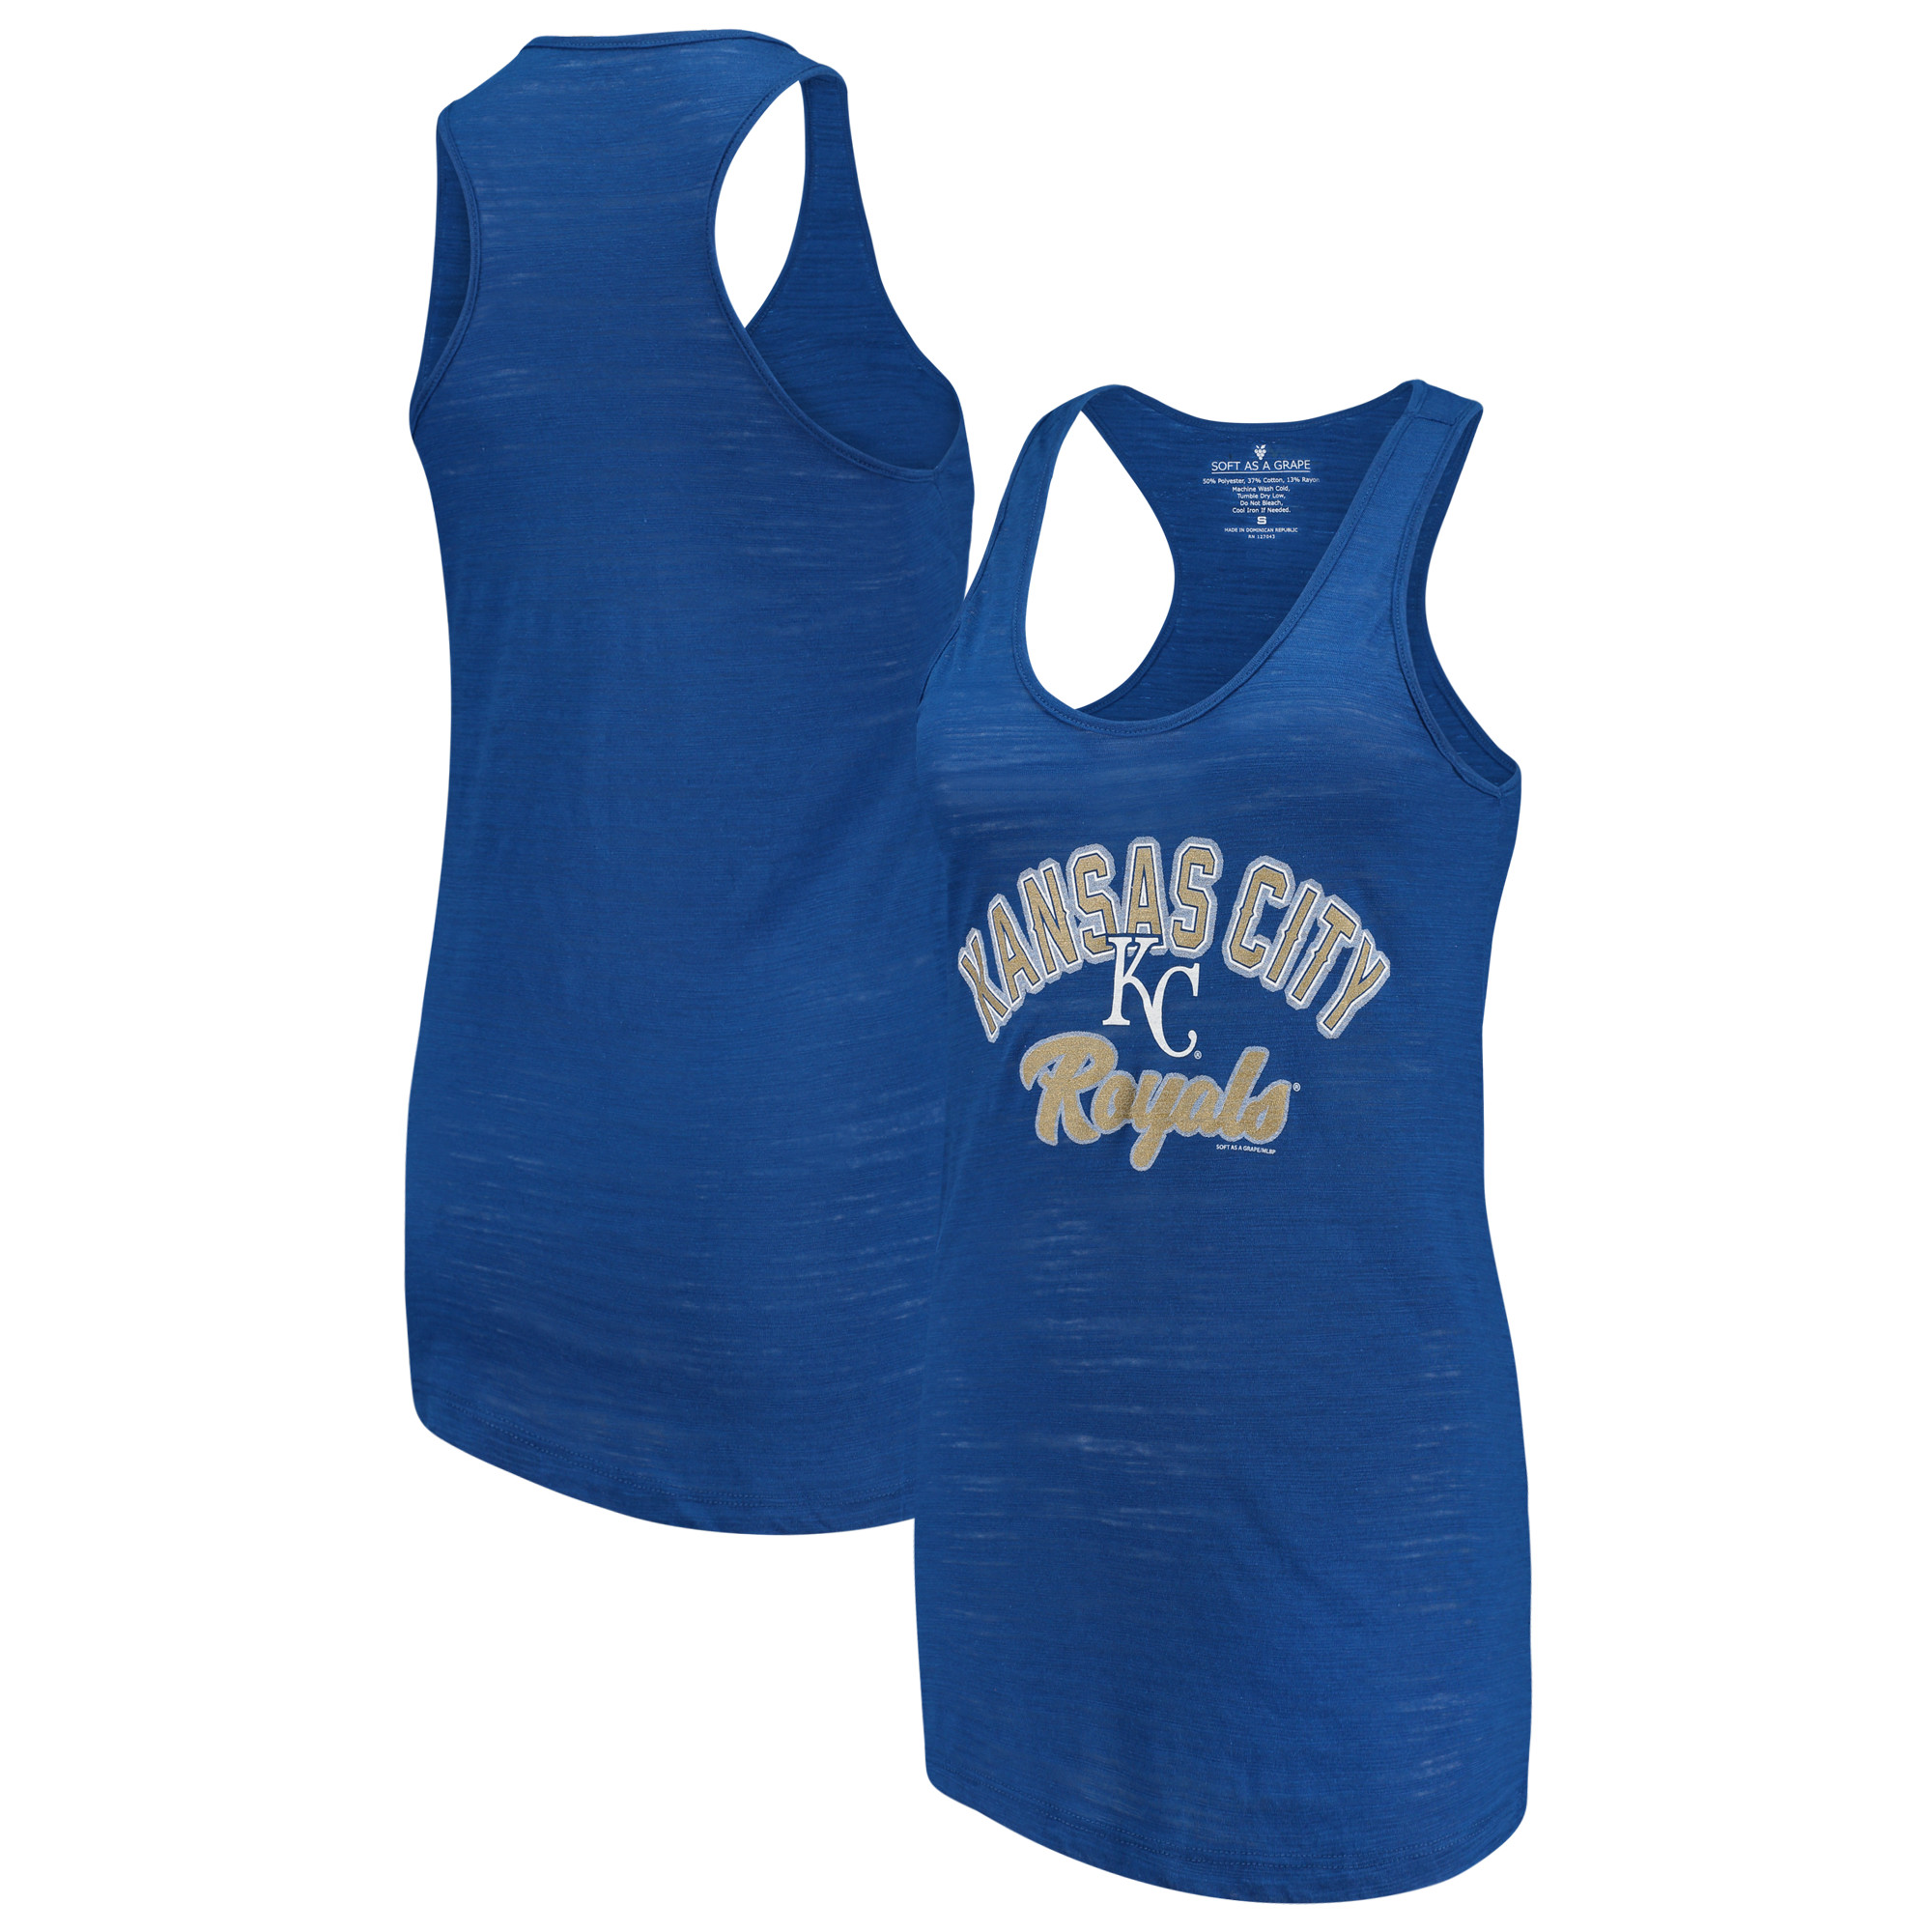 Kansas City Royals Soft as a Grape Women's Multicount Racerback Tank Top - Royal